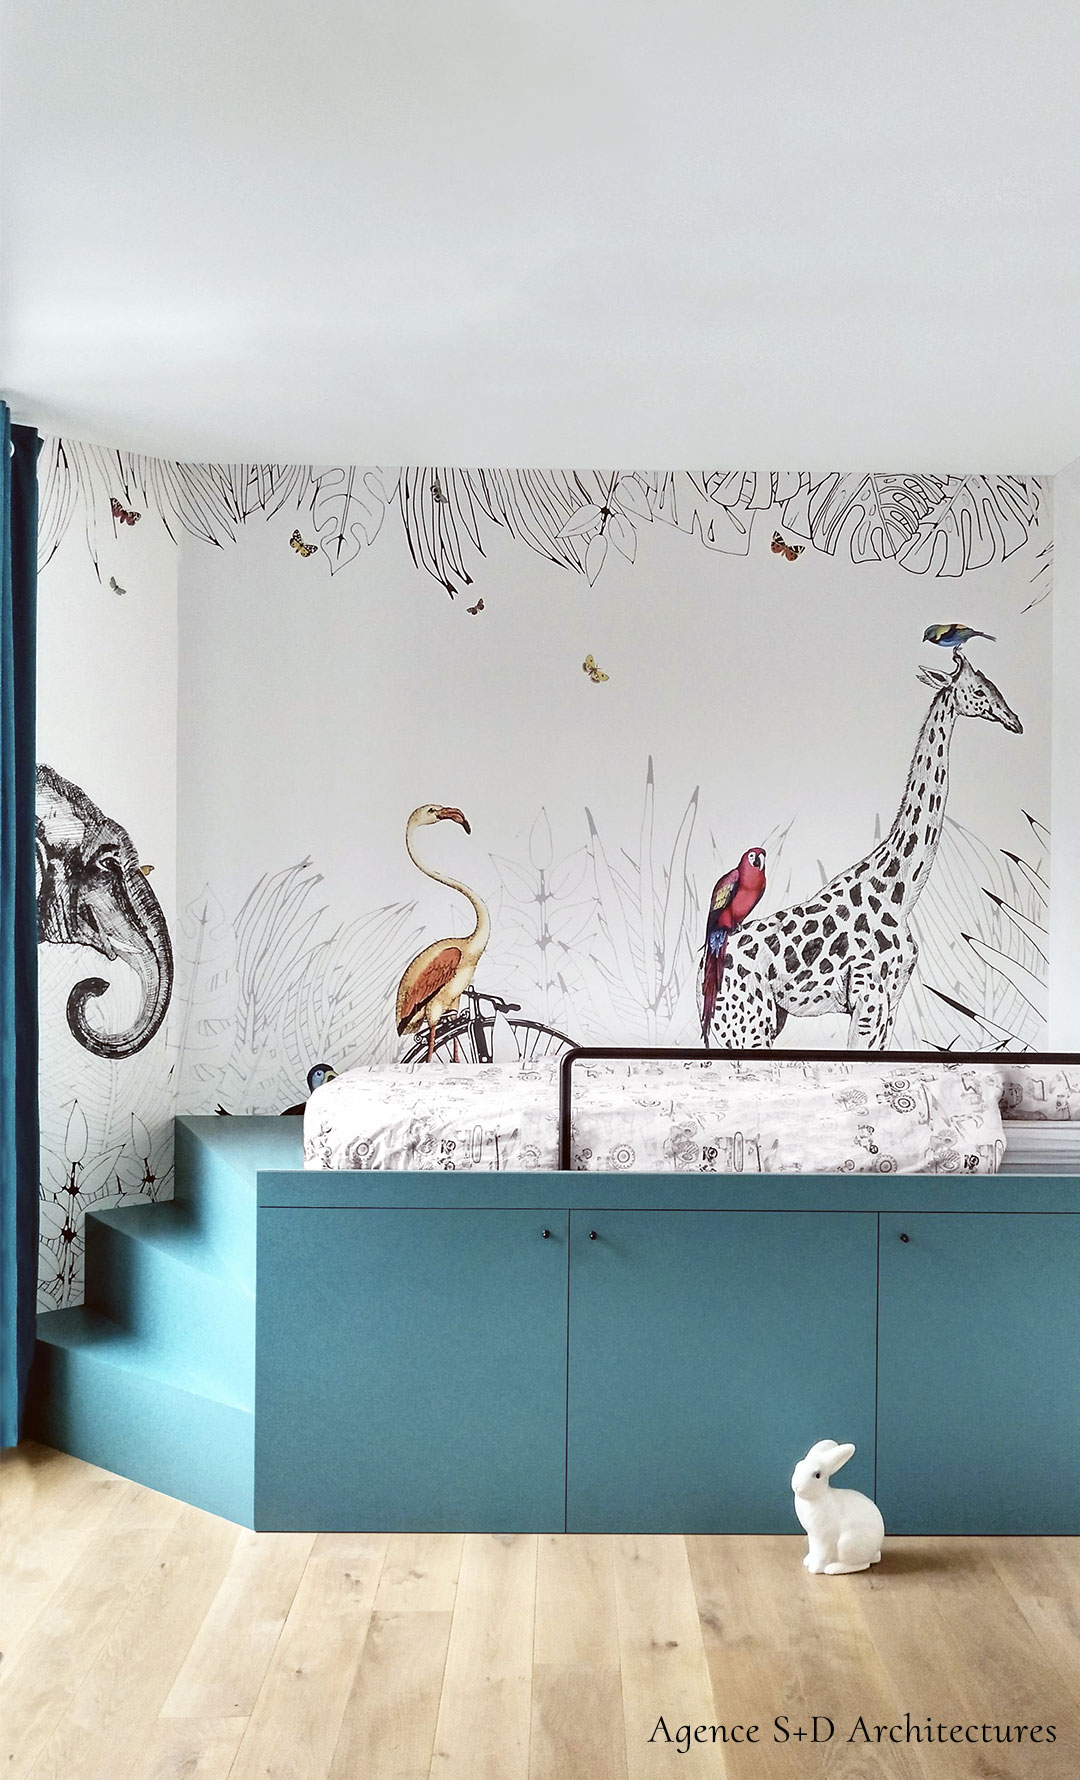 Wallpaper for kid's room - Animals - Metrozoo by Les Dominotiers © S+D Architectures